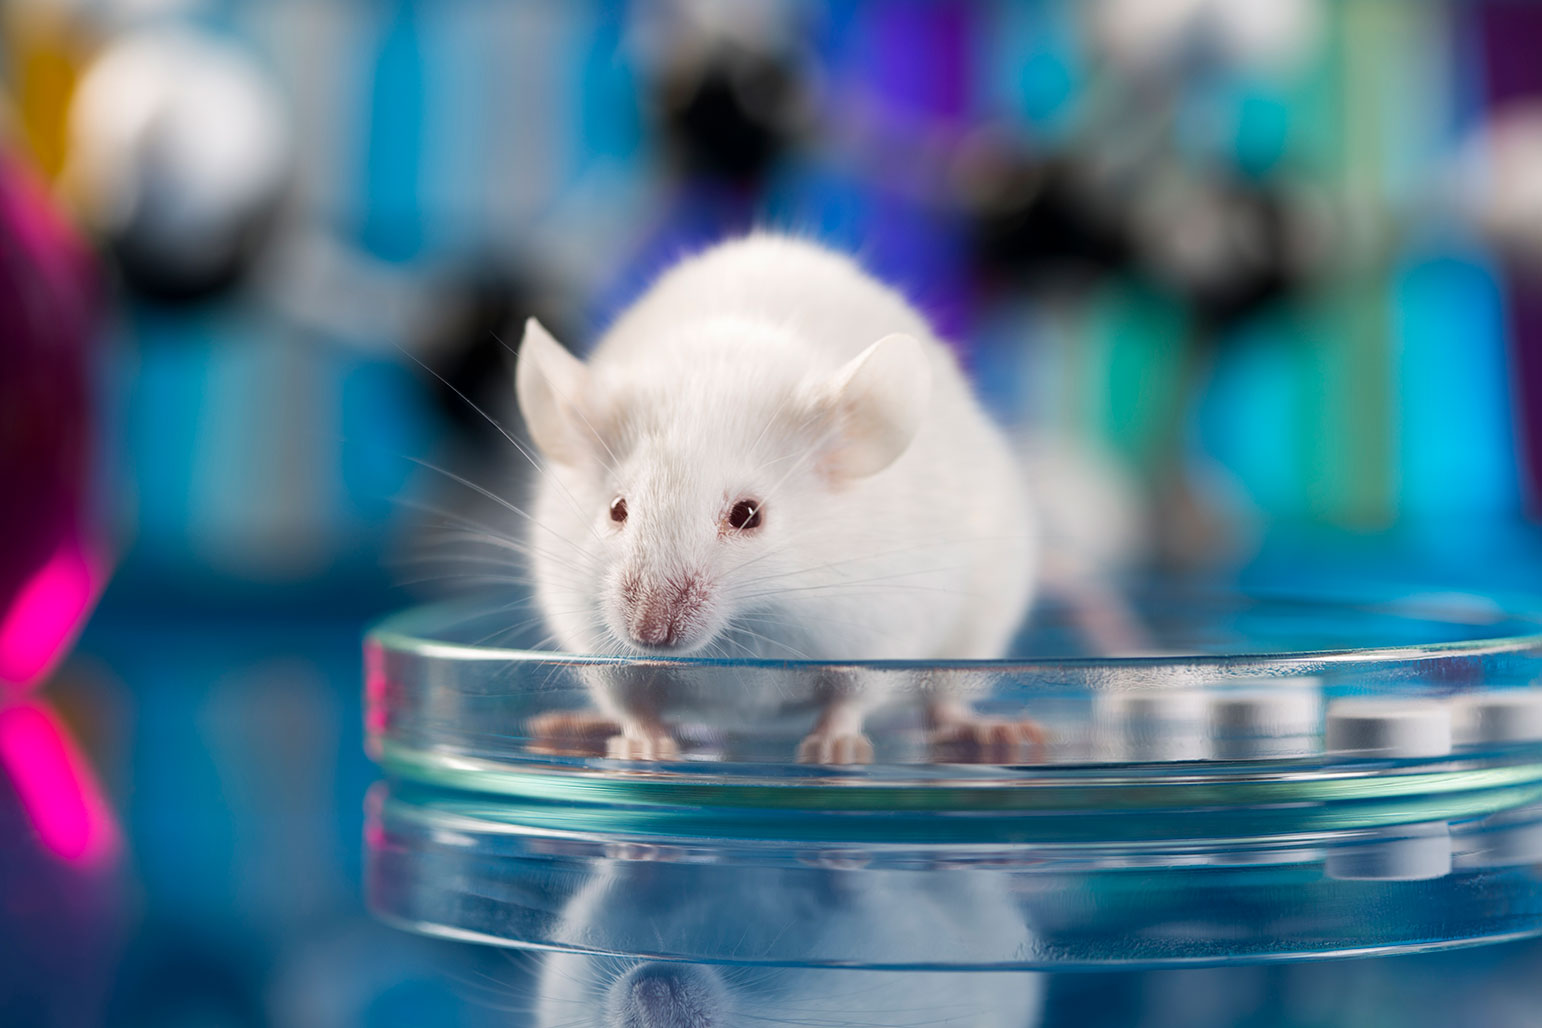 A white mouse sits in a glass Petri dish.